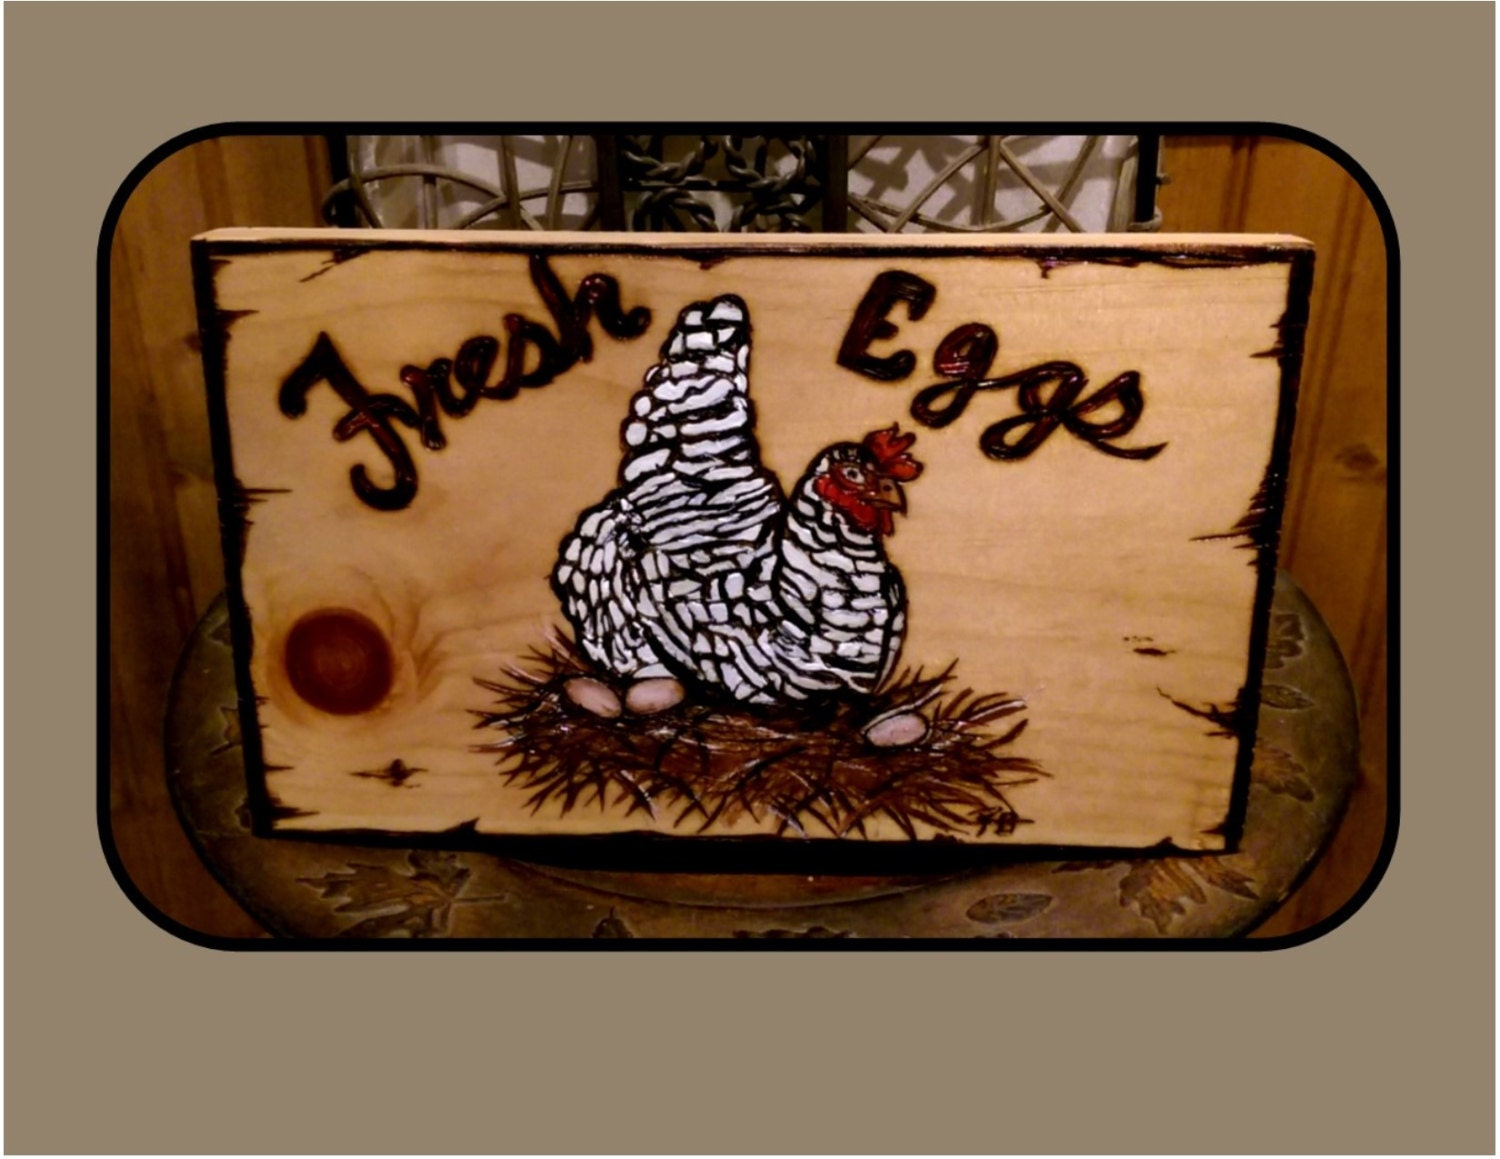 Cool Gifts Wood Anniversary Gift Idead Wife Gift Chicken